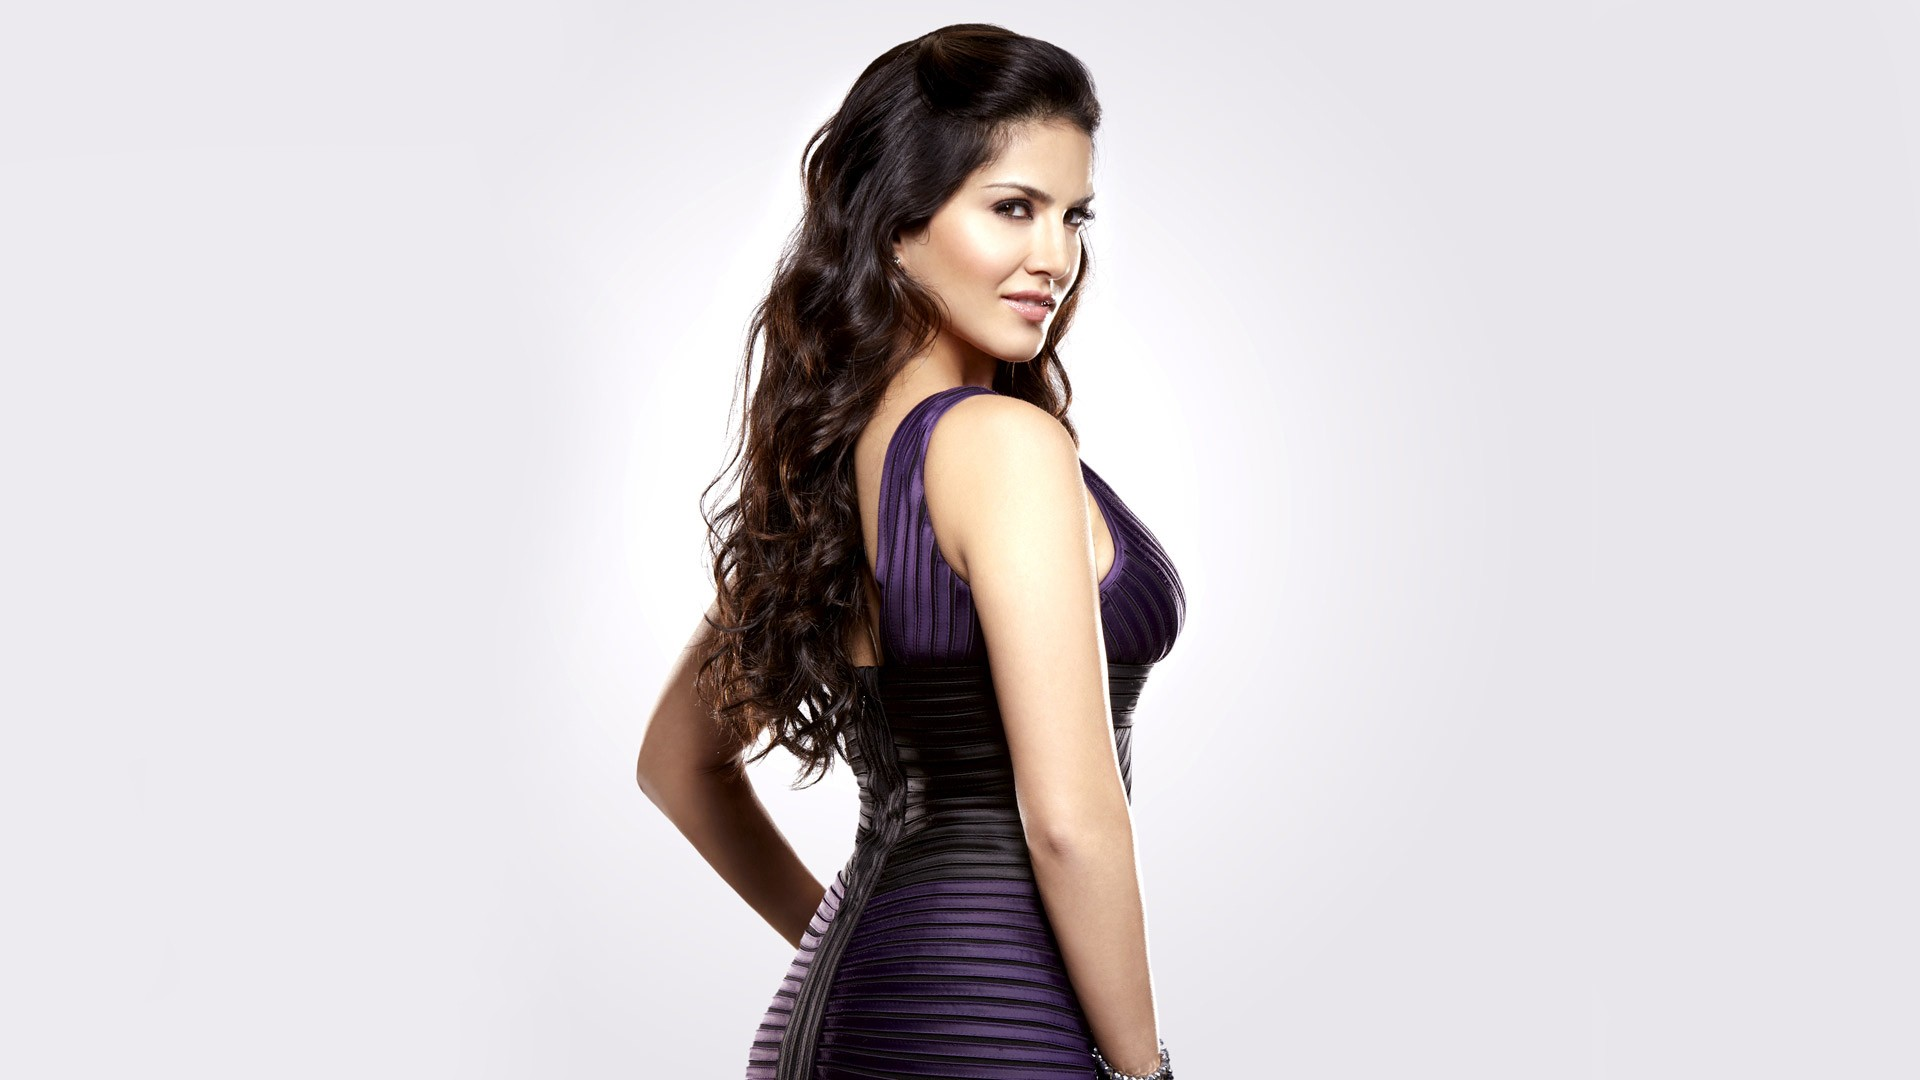 sunny leone 2, hd indian celebrities, 4k wallpapers, images